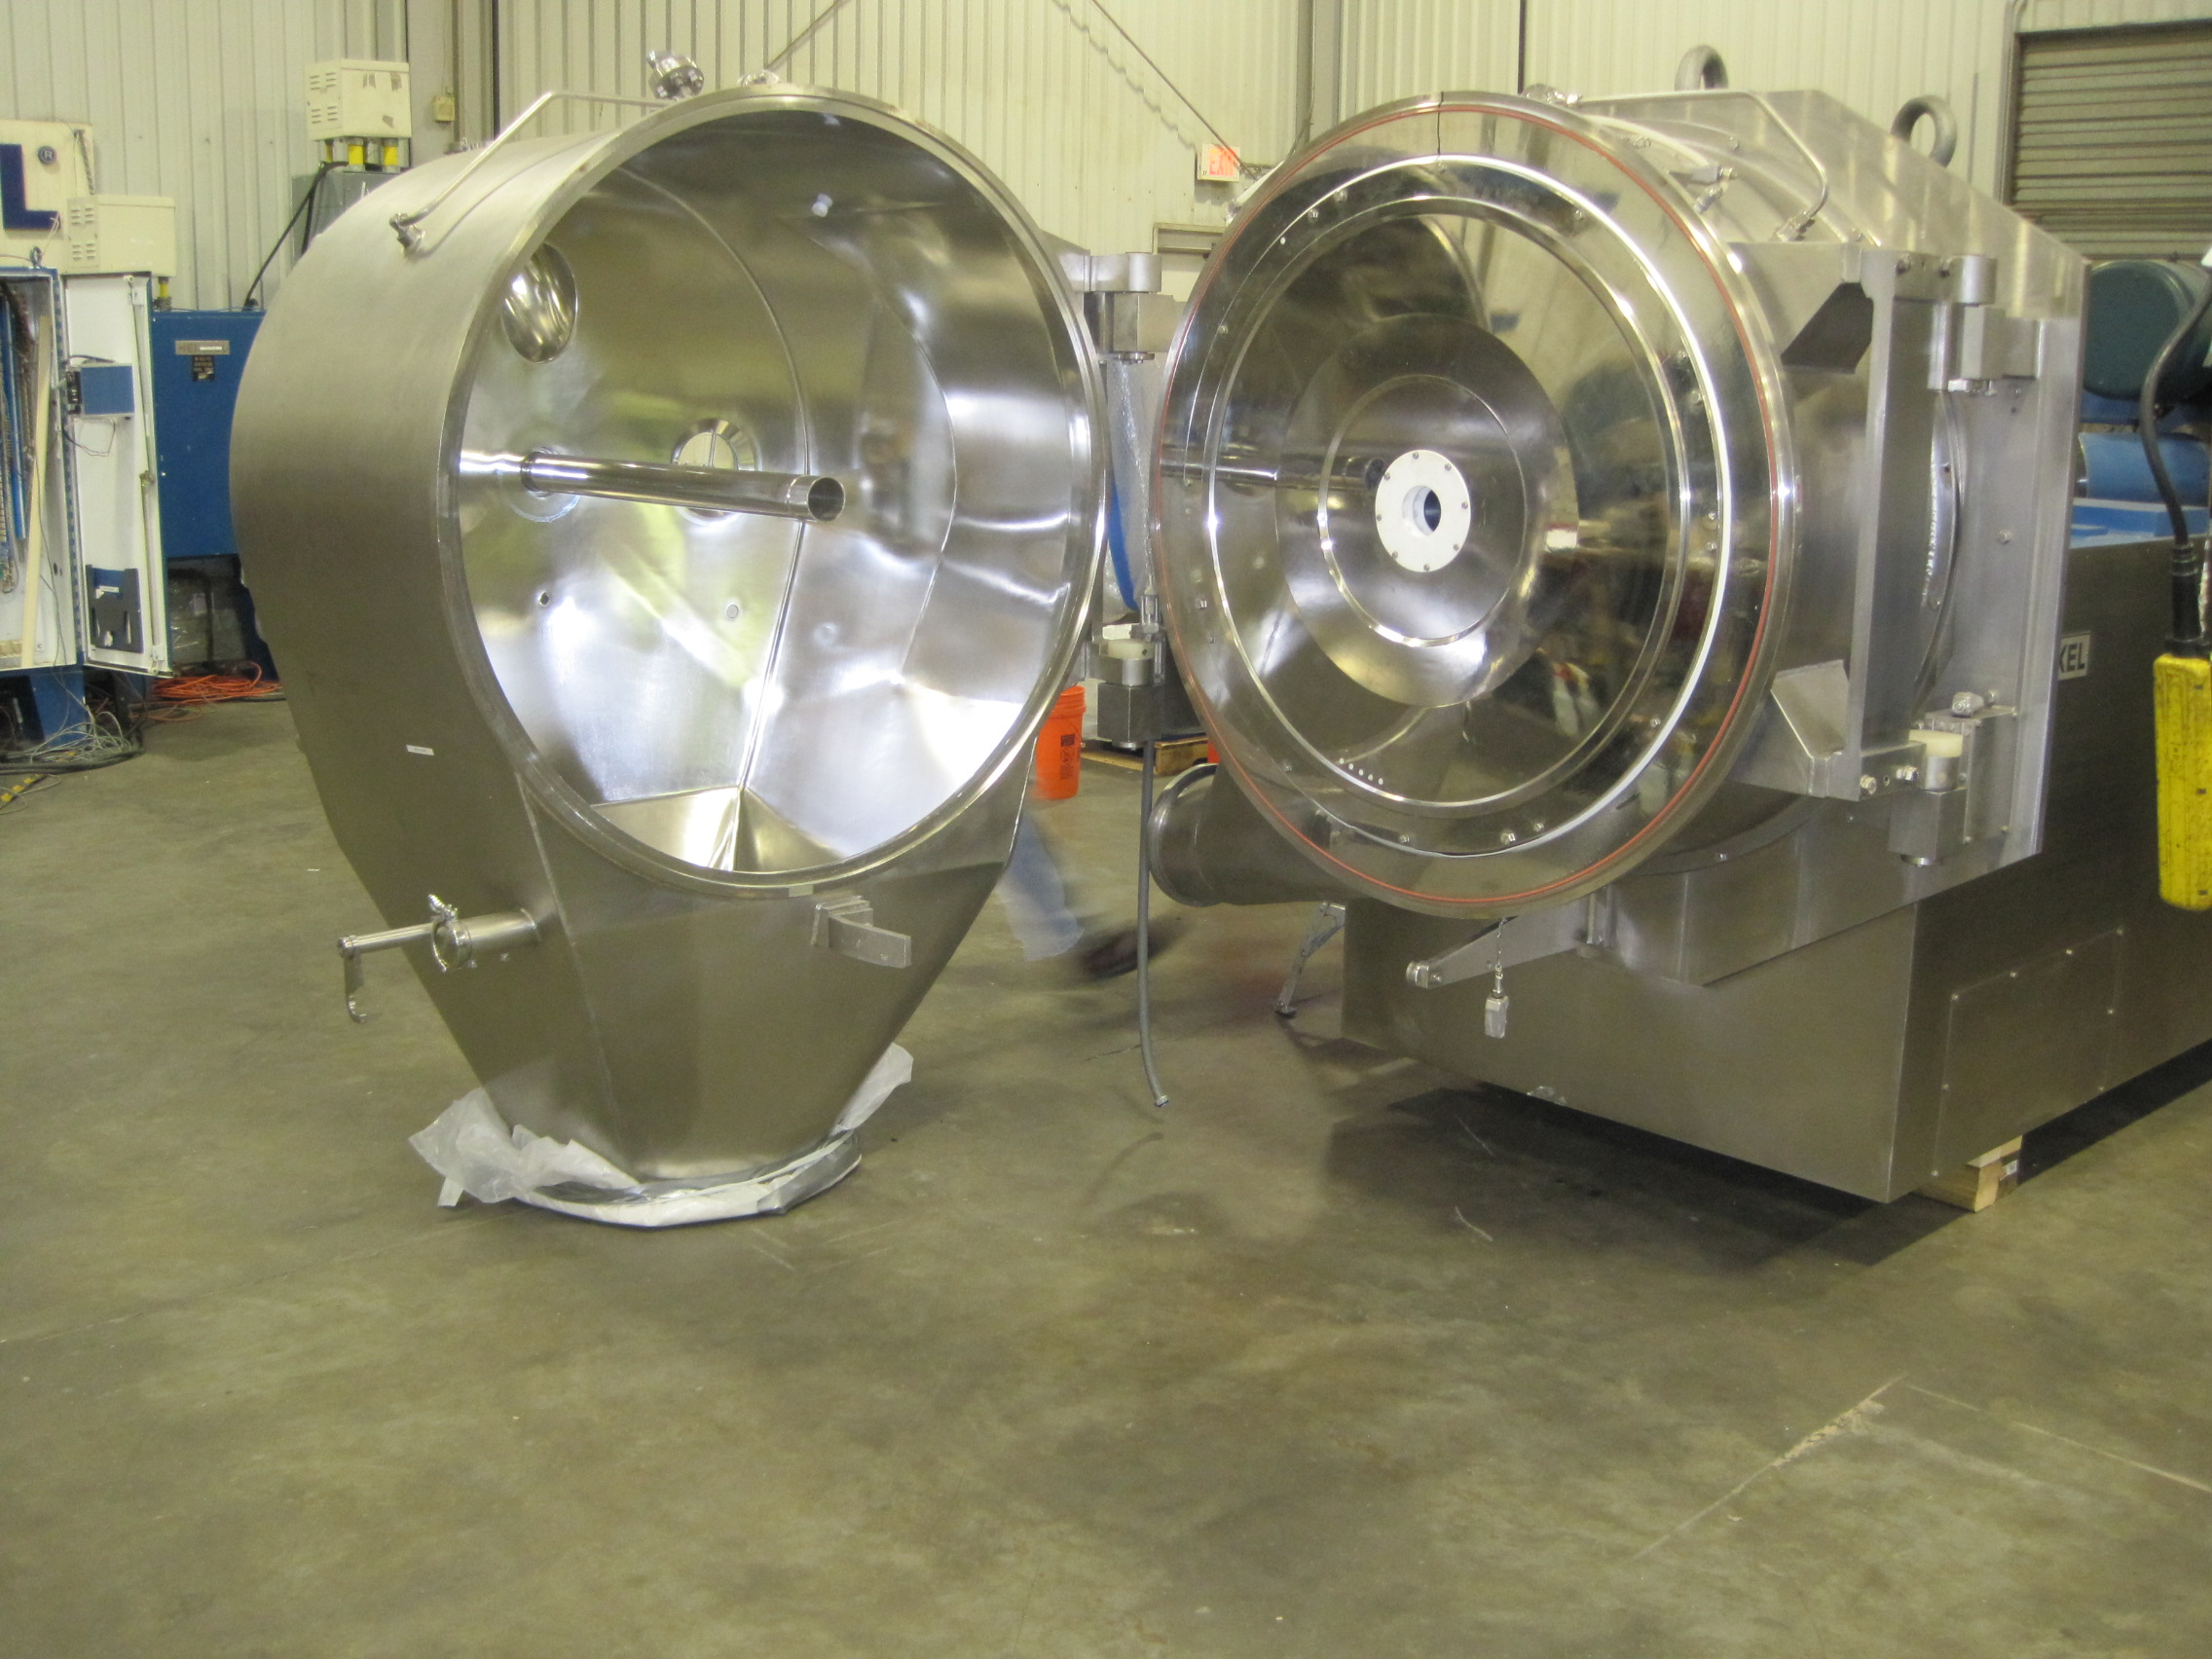 ***SOLD***Heinkel model HF-1000.1 Inverting Filter Centrifuge.  Stainless steel MOC, has a full mechanical rebuild, complete Electrical & Control system designed for Class 1 Div.2. Machine has been fully tested and is ready for quick delivery and start-up.